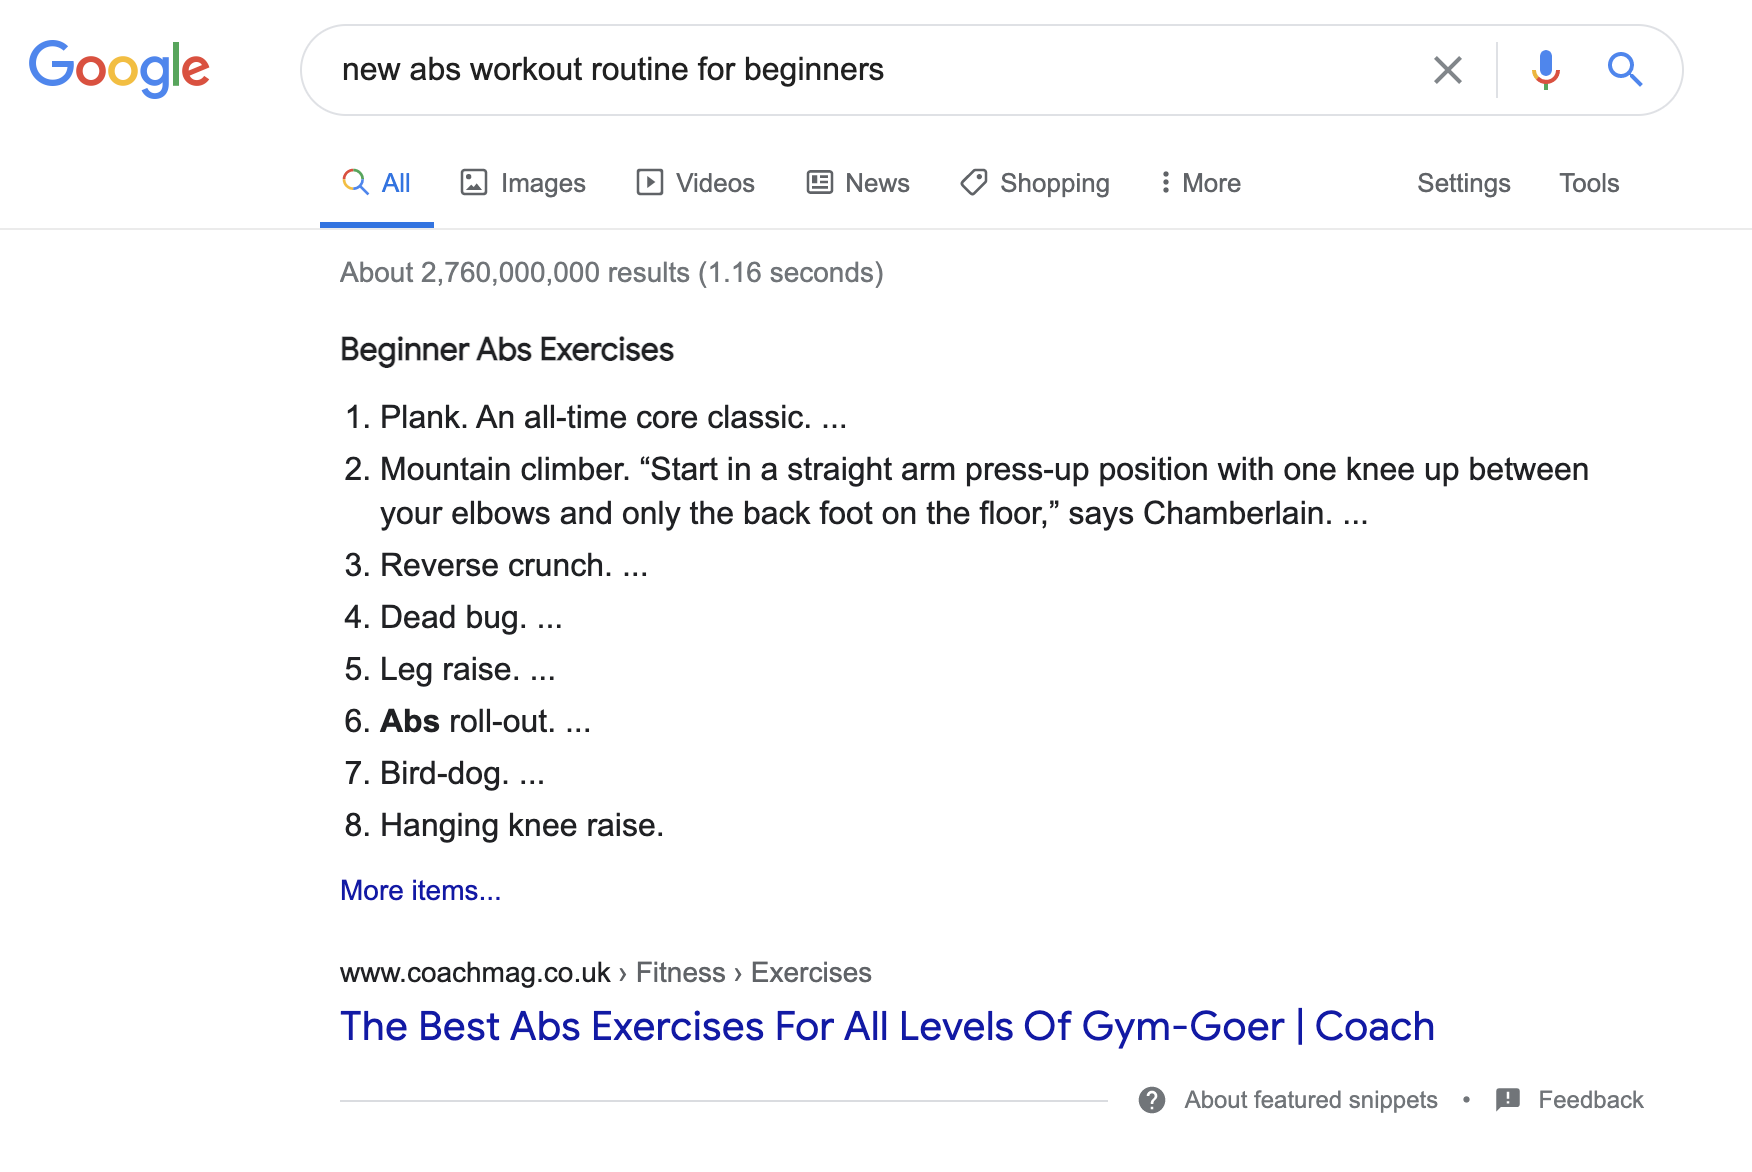 abs workout routine featured snippet